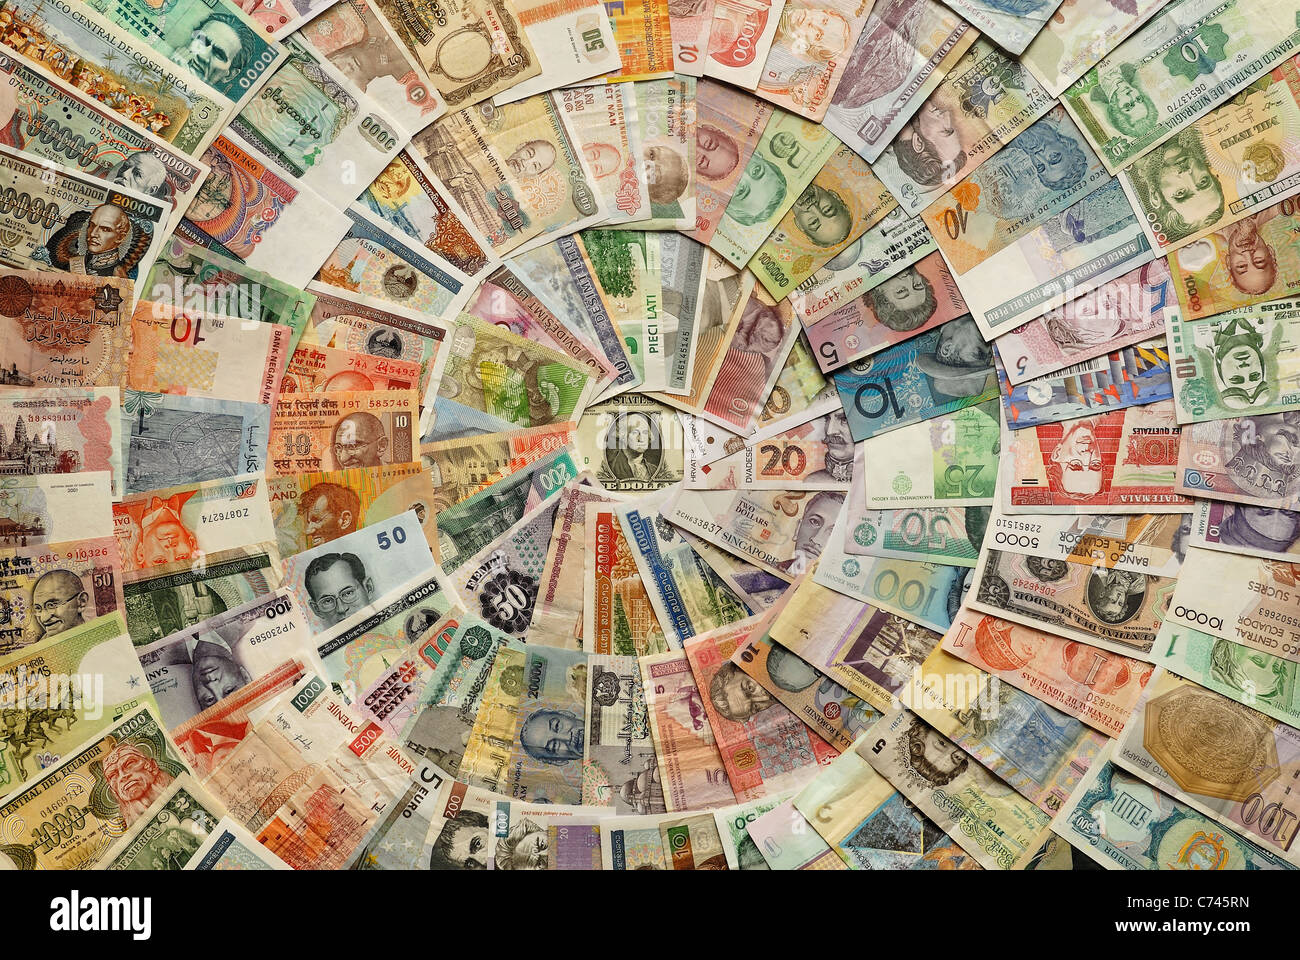 Bills in different currencies ordered in circles around the central dollar. - Stock Image